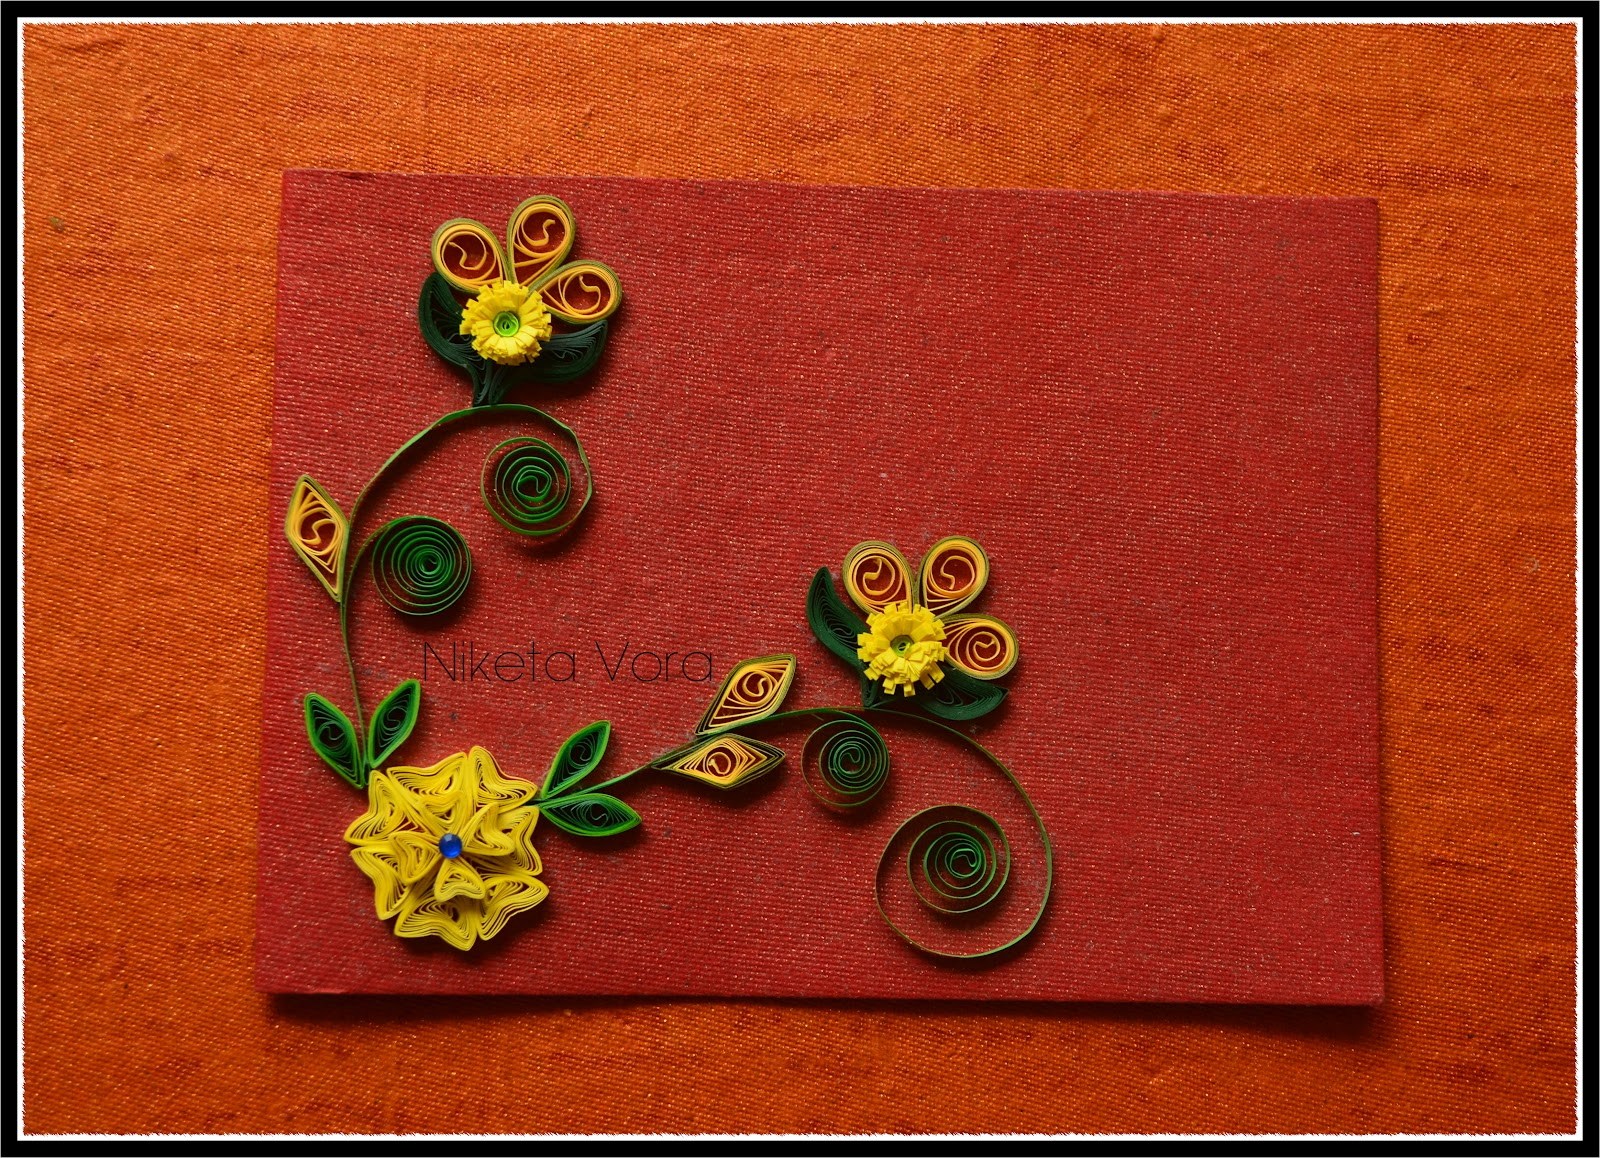 Niketa39;s Creative Corner: Handmade quilled greeting card